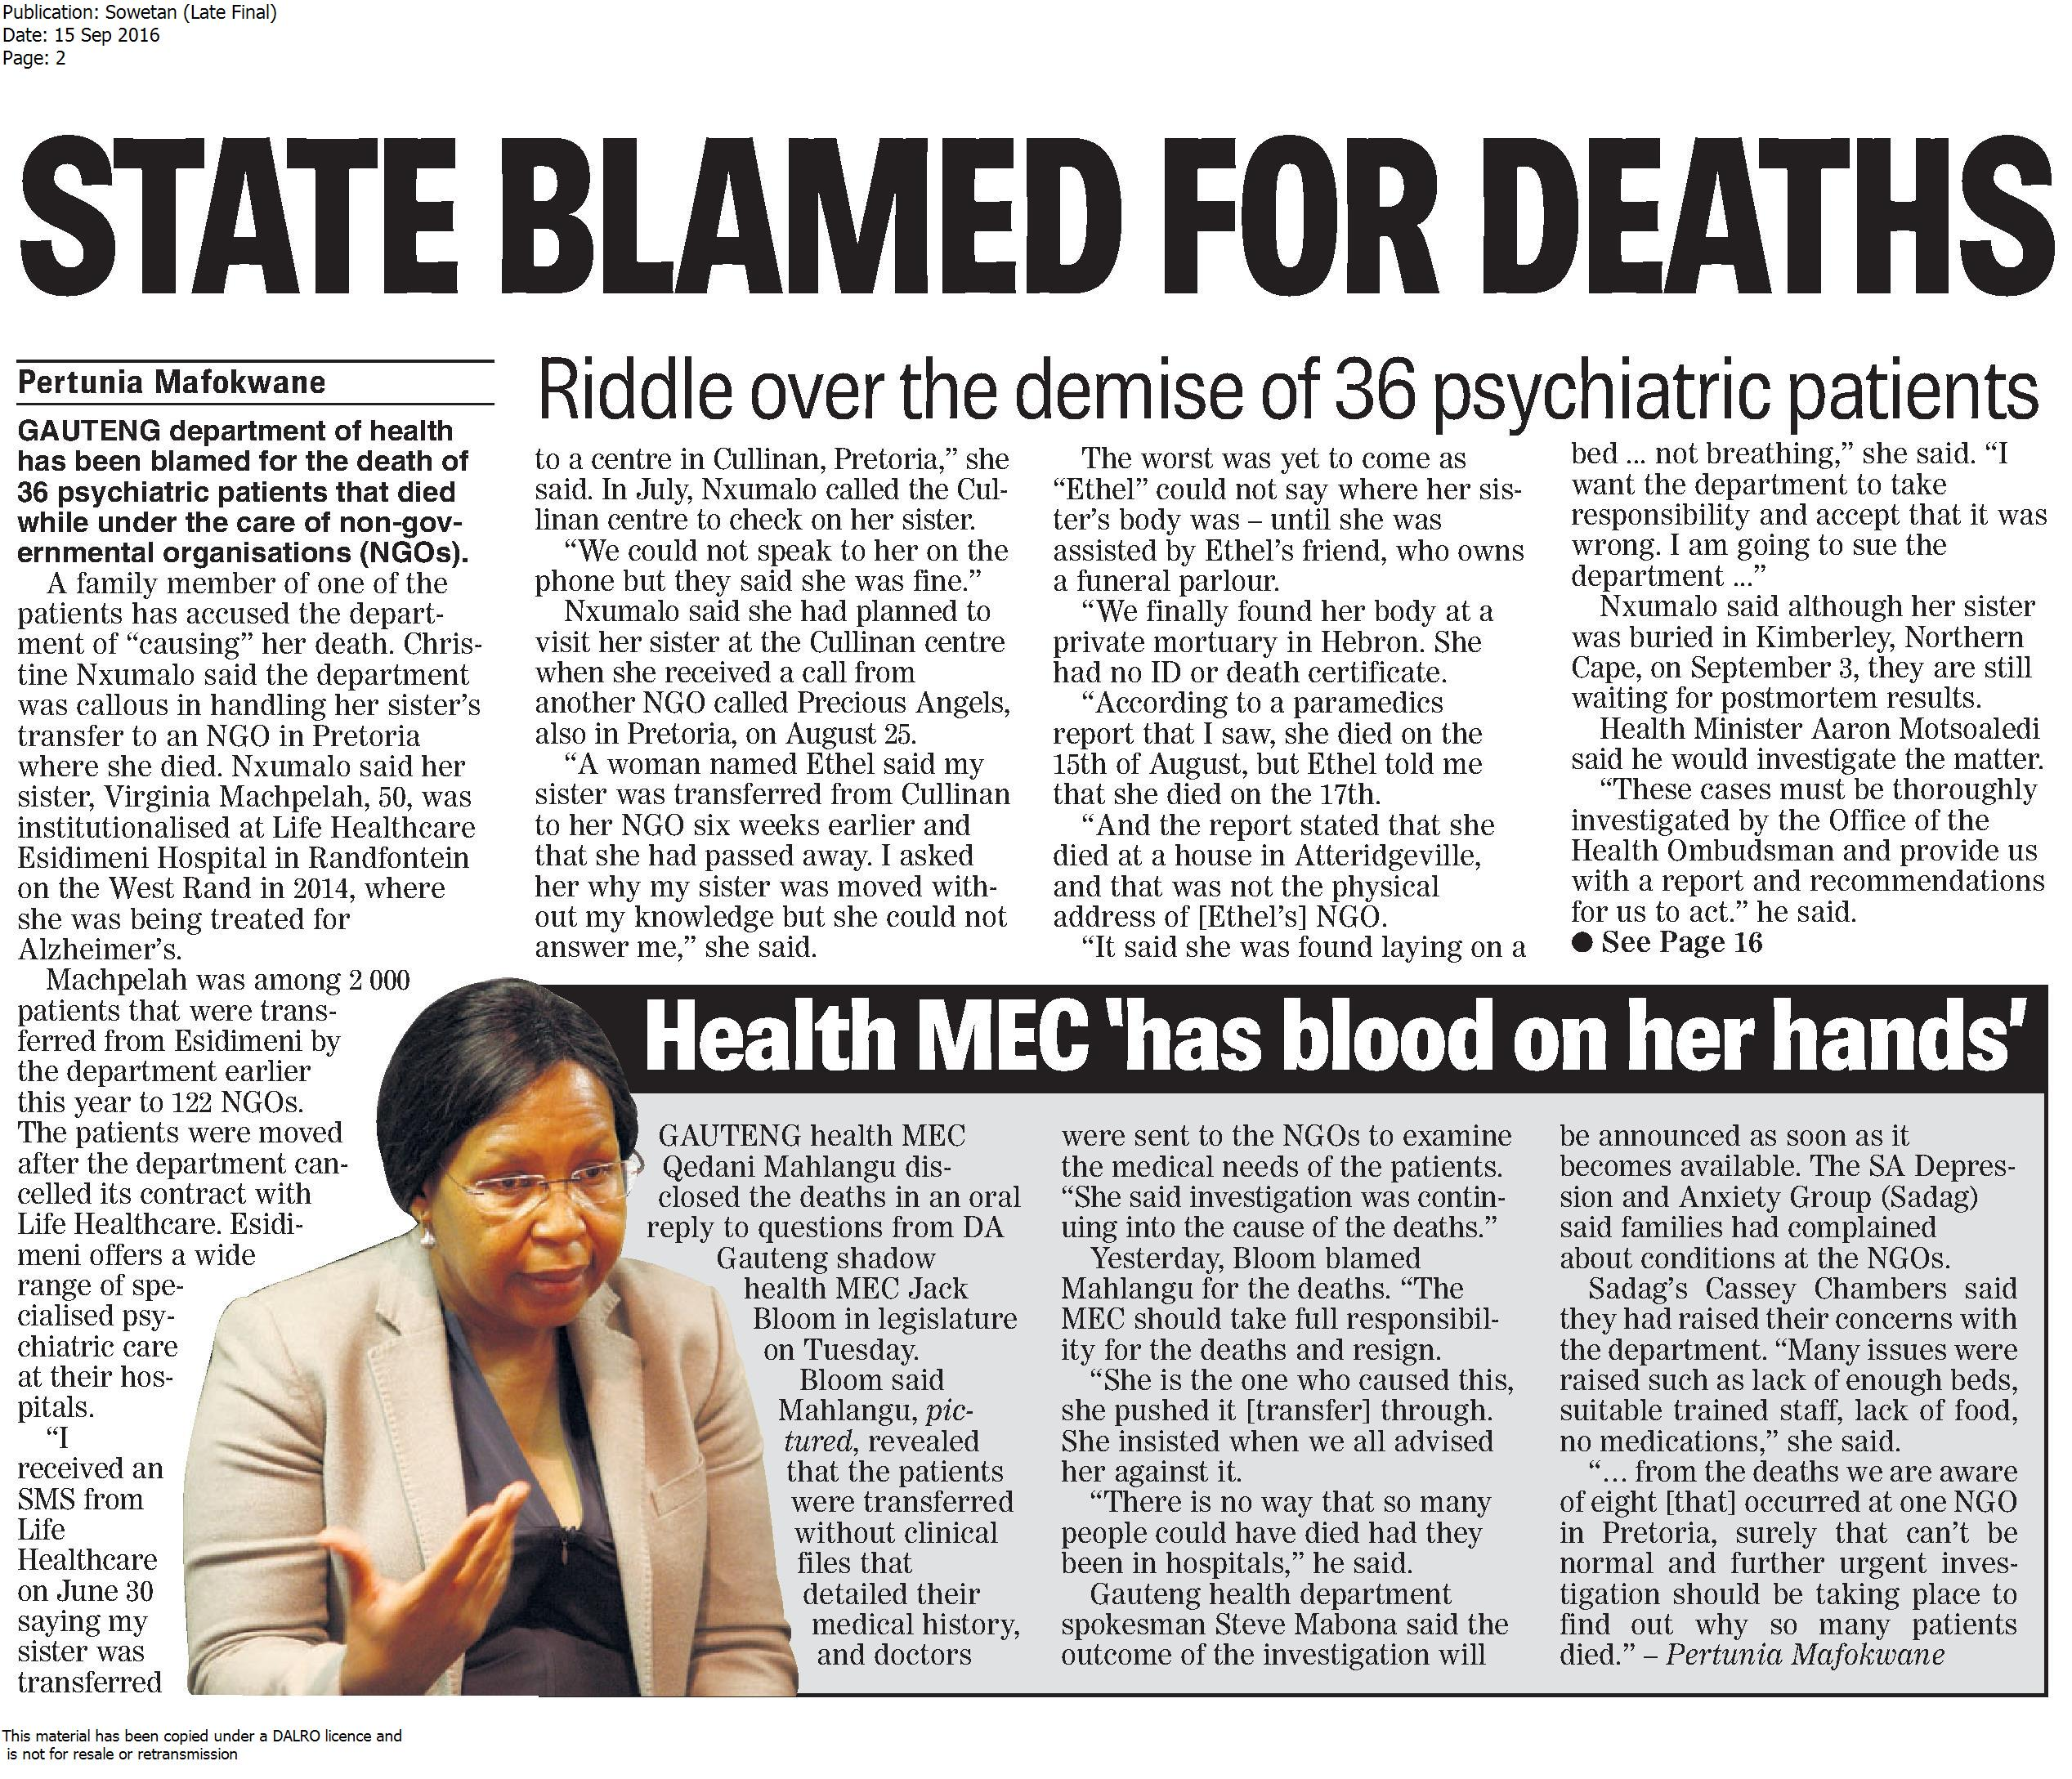 state blamed for deaths